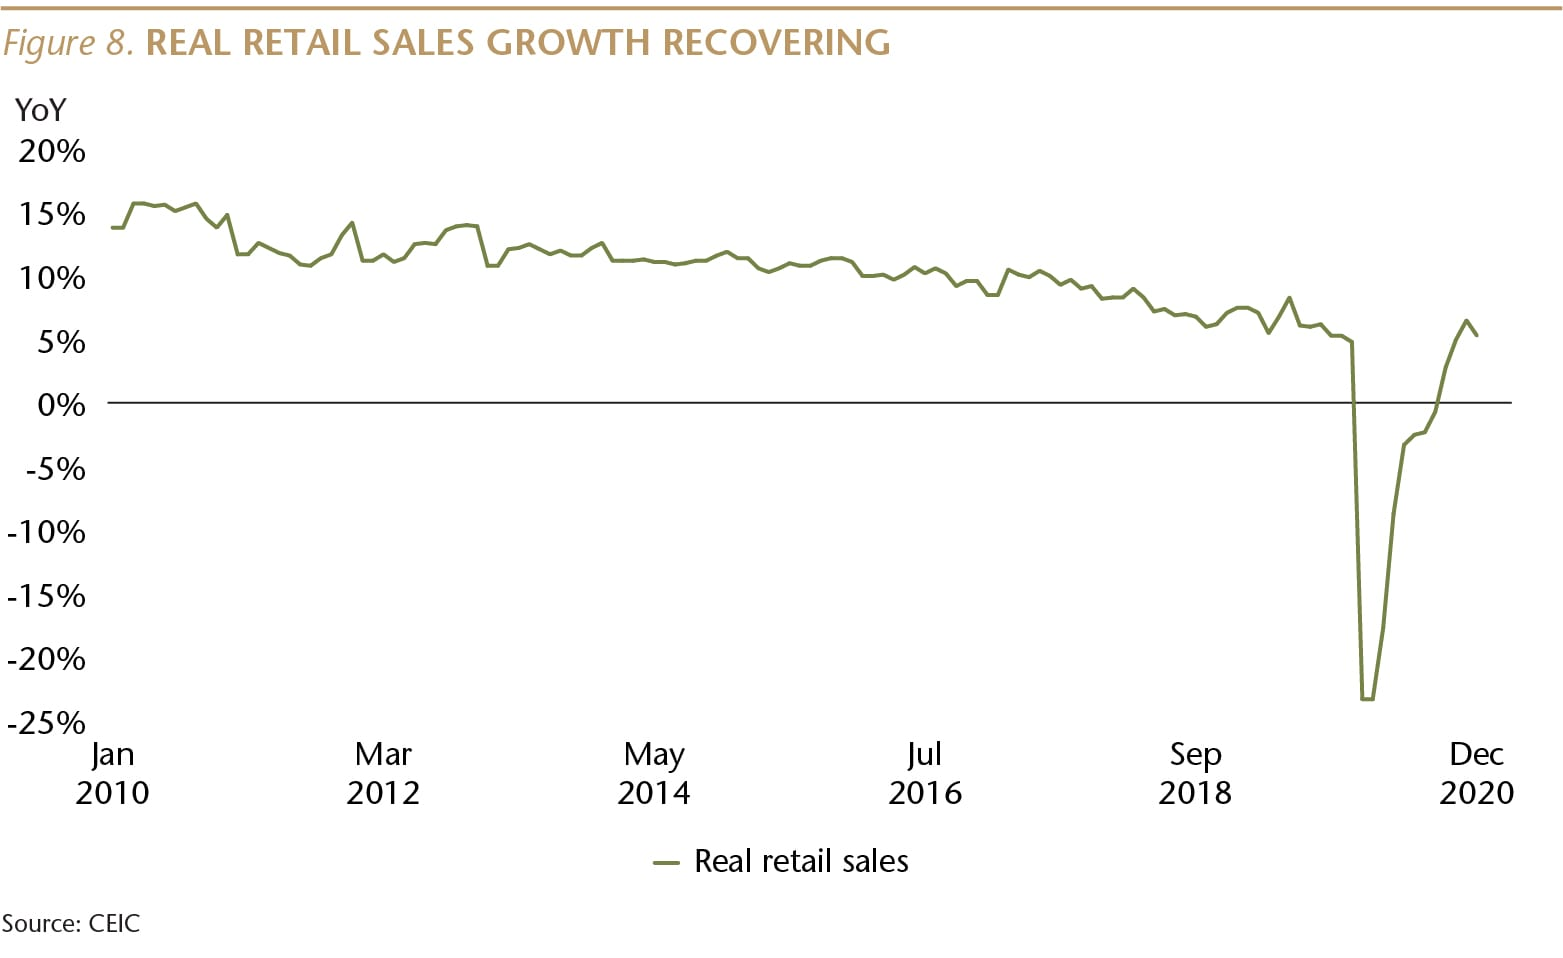 SI073_Figure 8_Real reatail sales recovering_WEB-01-min.jpg